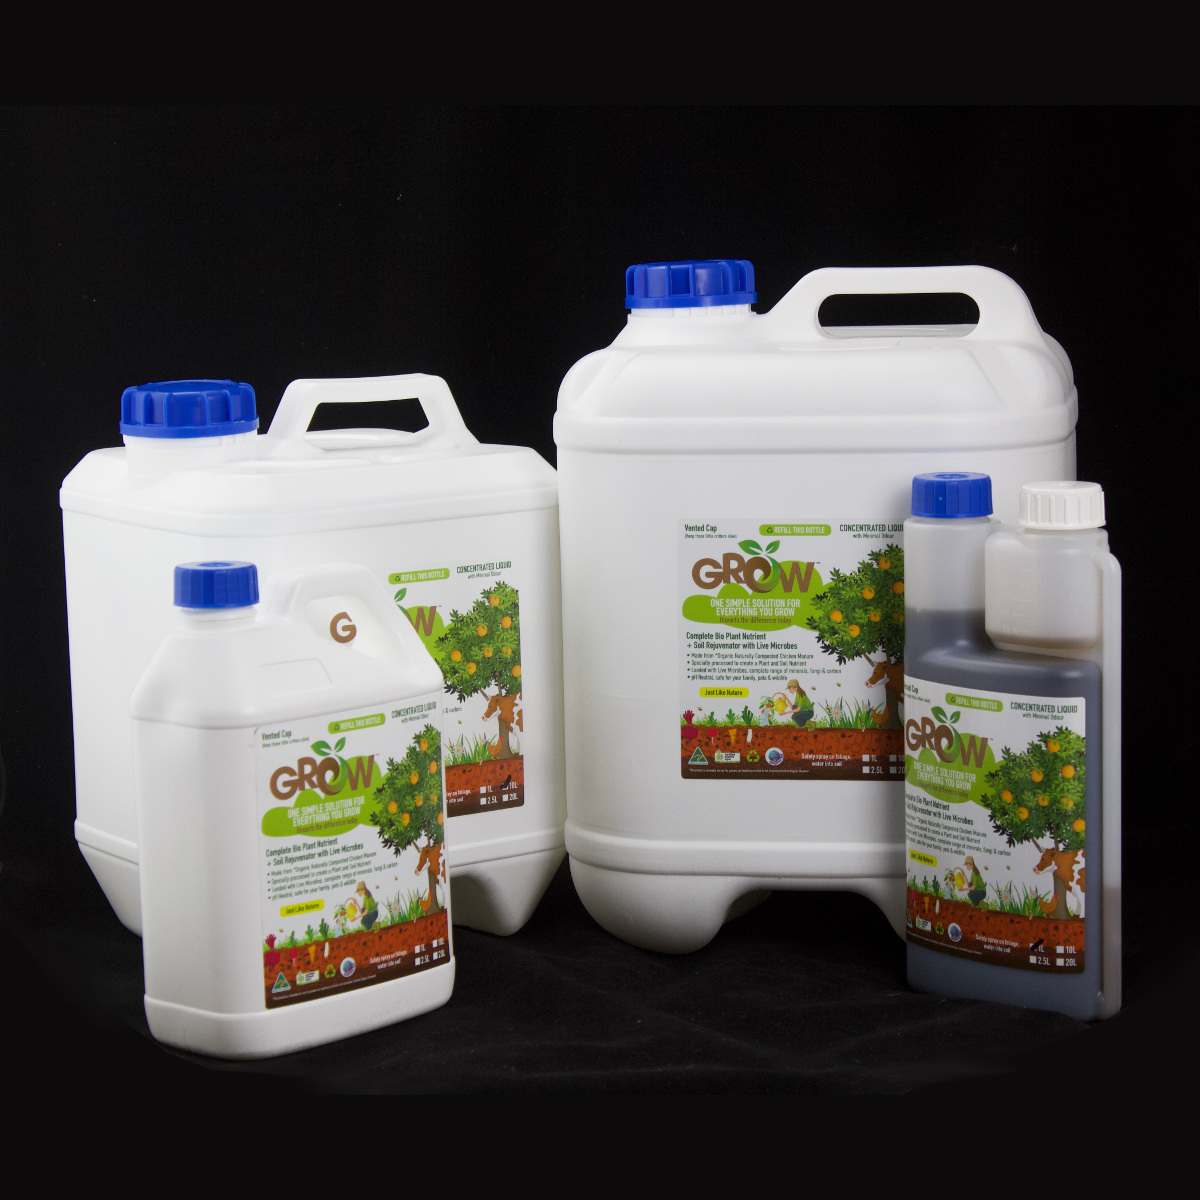 GROW products